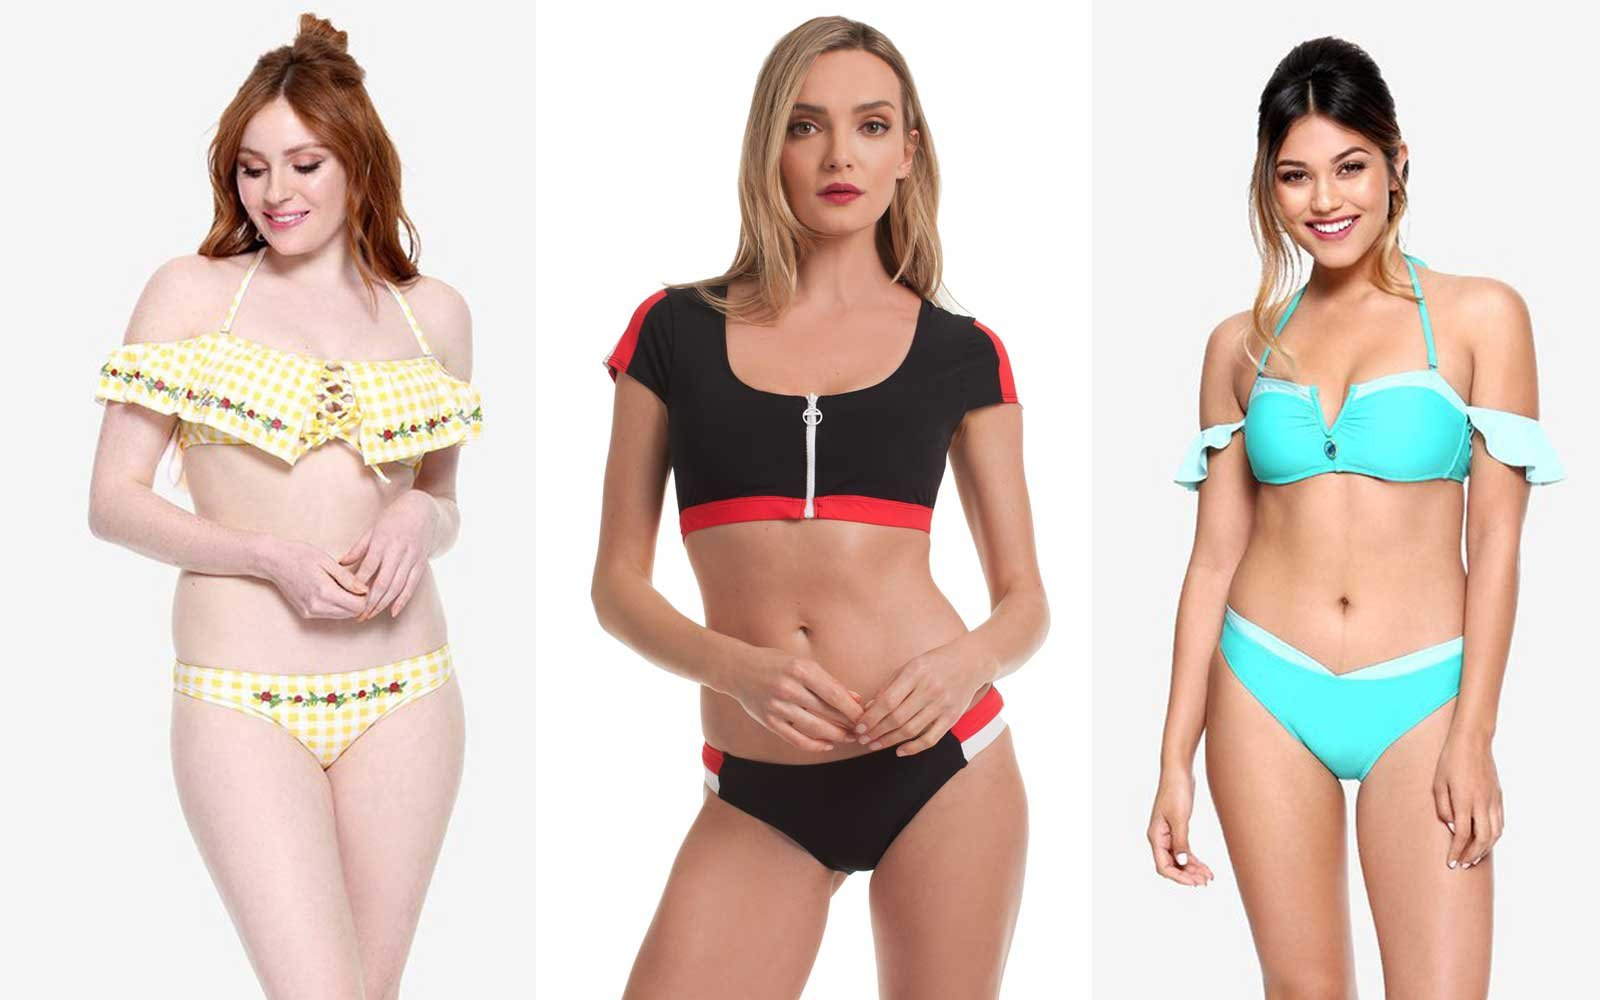 Disney-inspired swimsuits